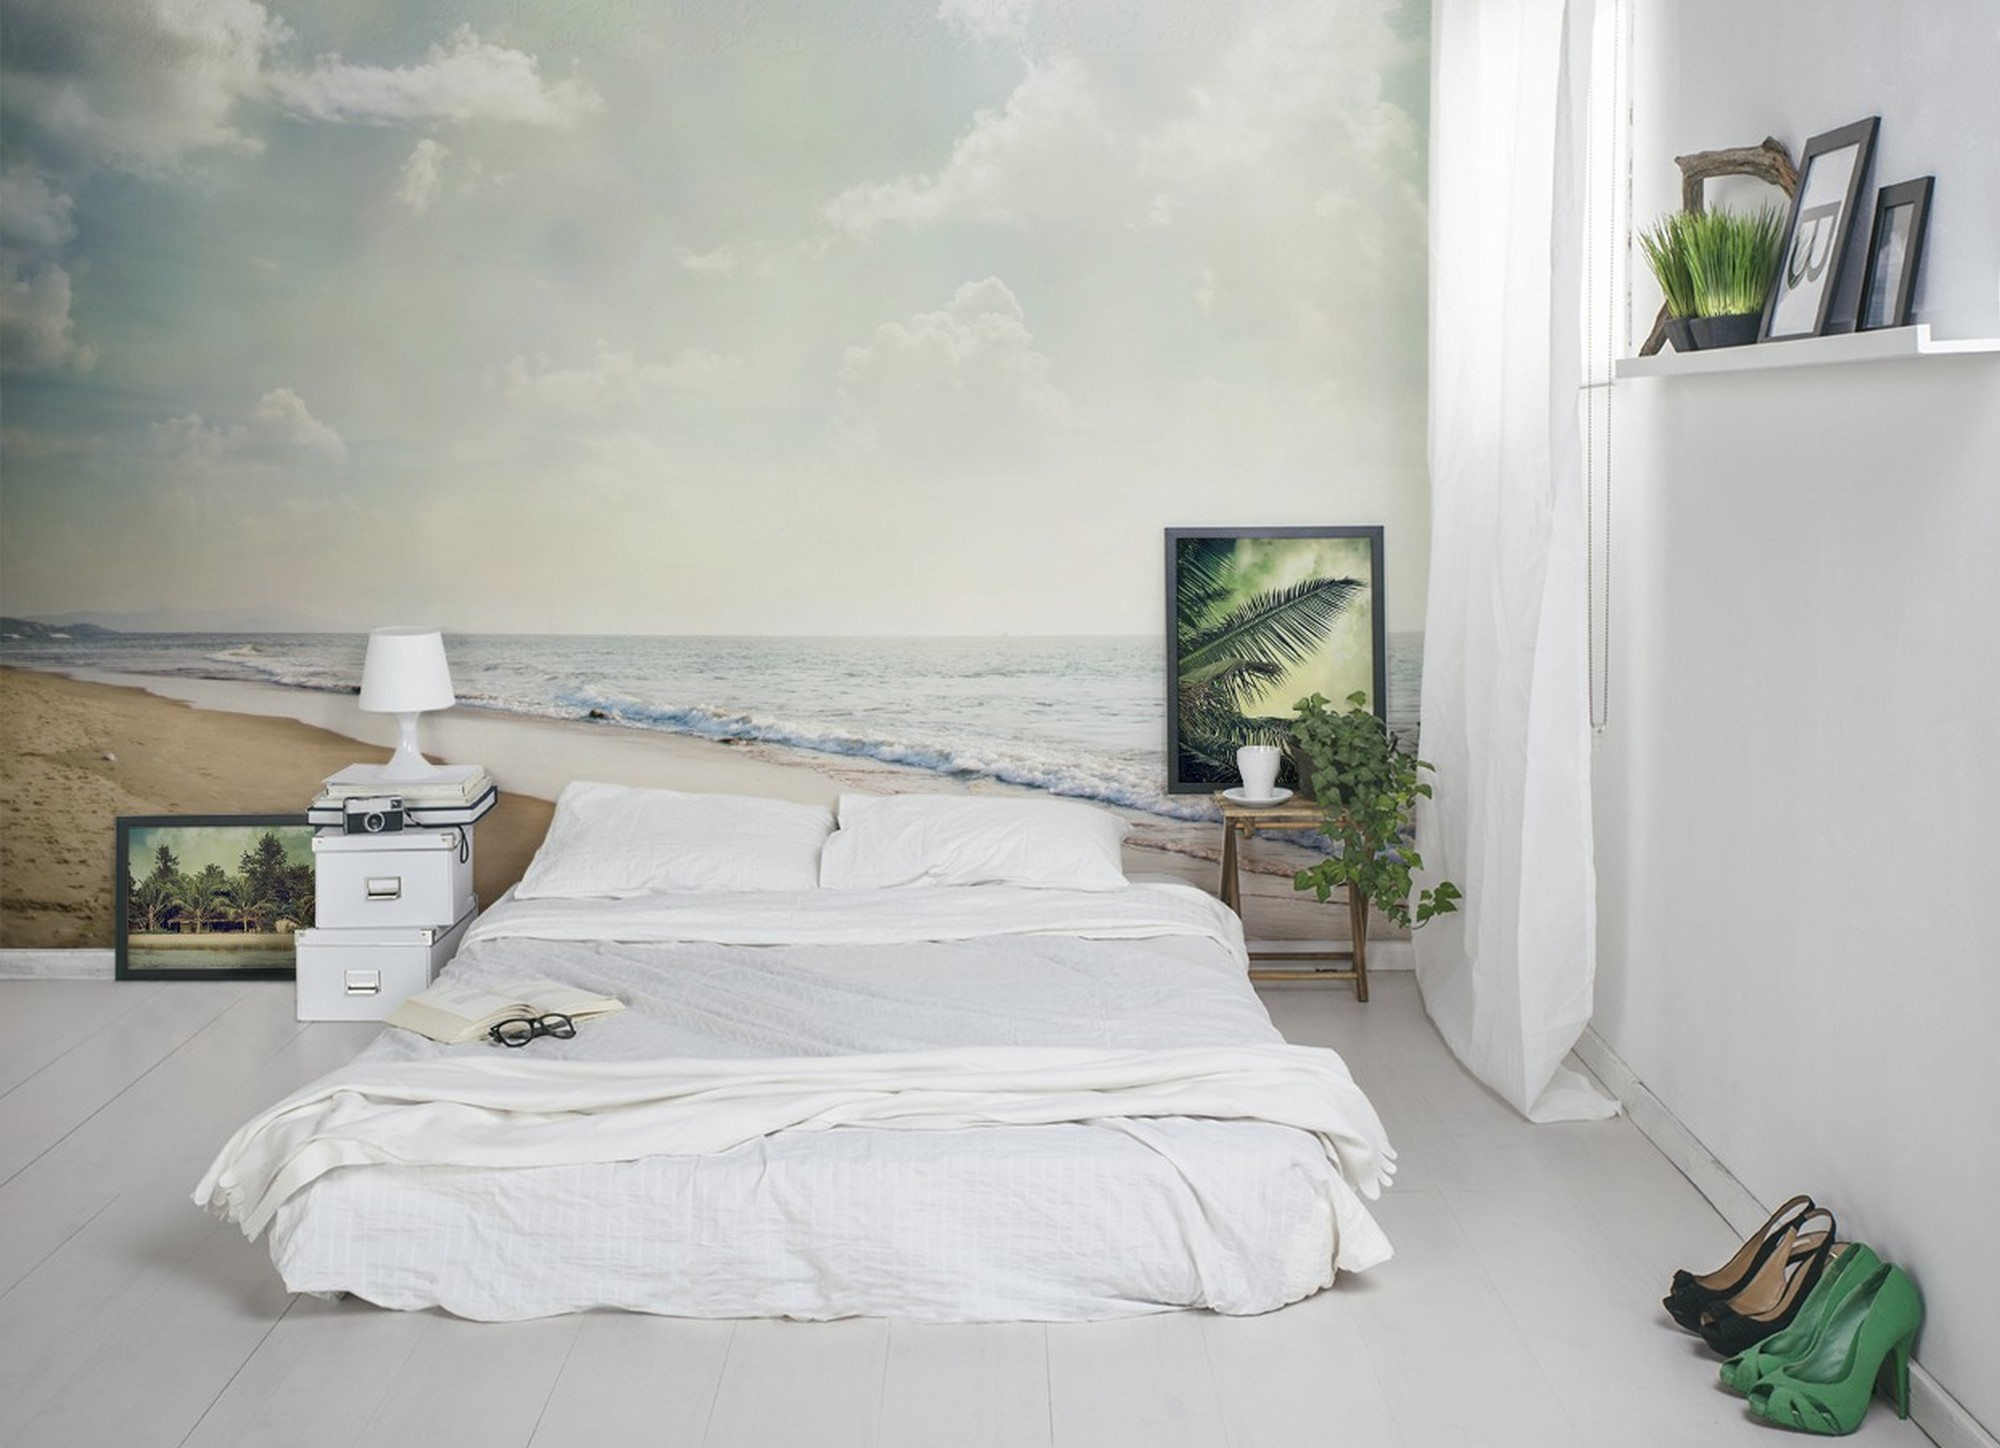 Exotic Journey • Scandinavian - Bedroom - Flowers and plants - Landscapes - Wall Murals - Posters